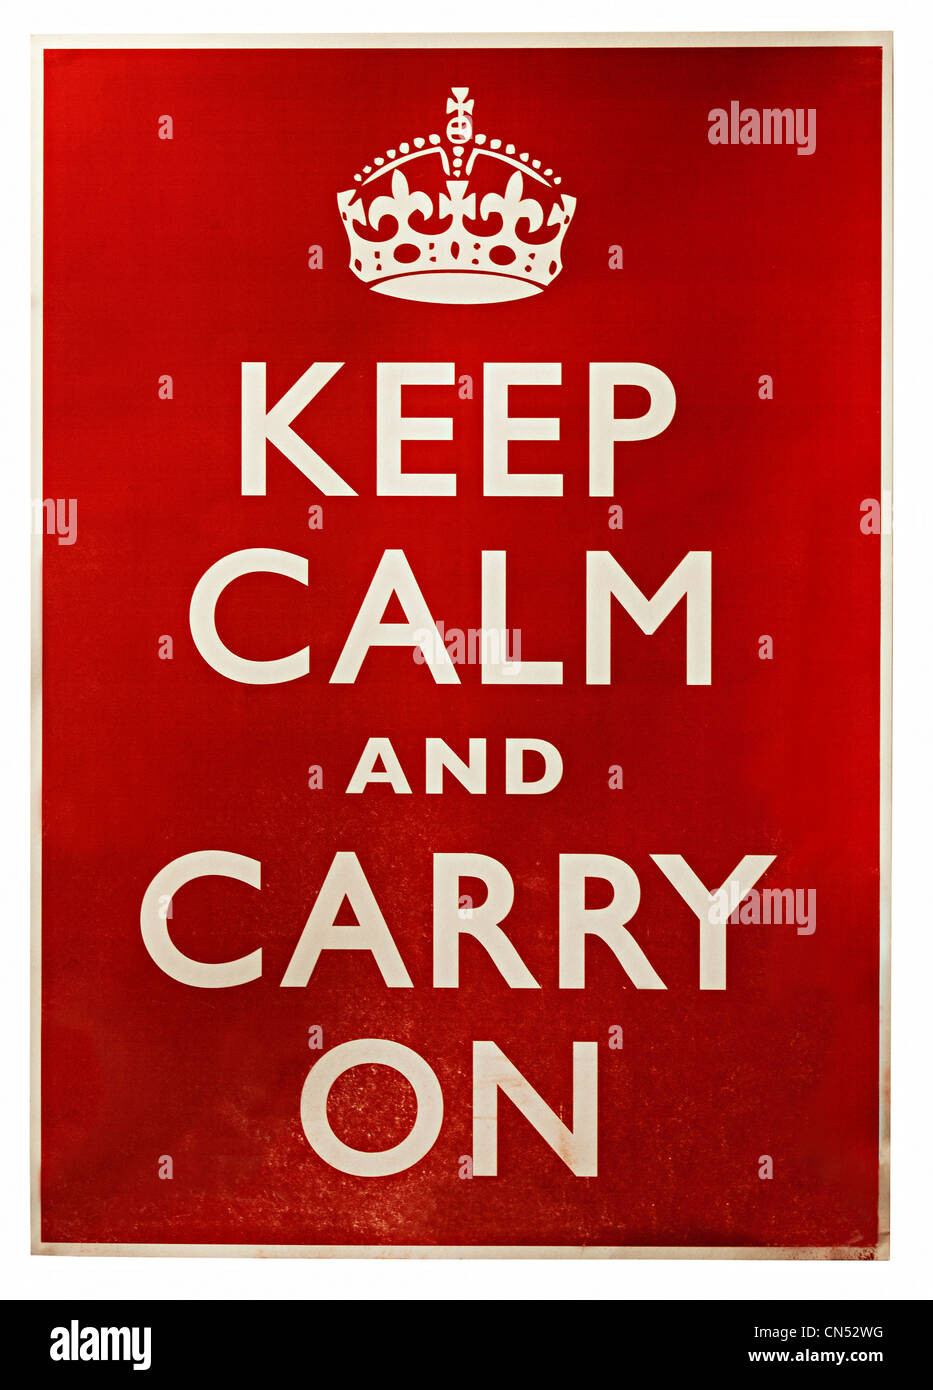 Affiche de guerre britannique publié en 1939, Keep calm and carry on, England, UK Banque D'Images